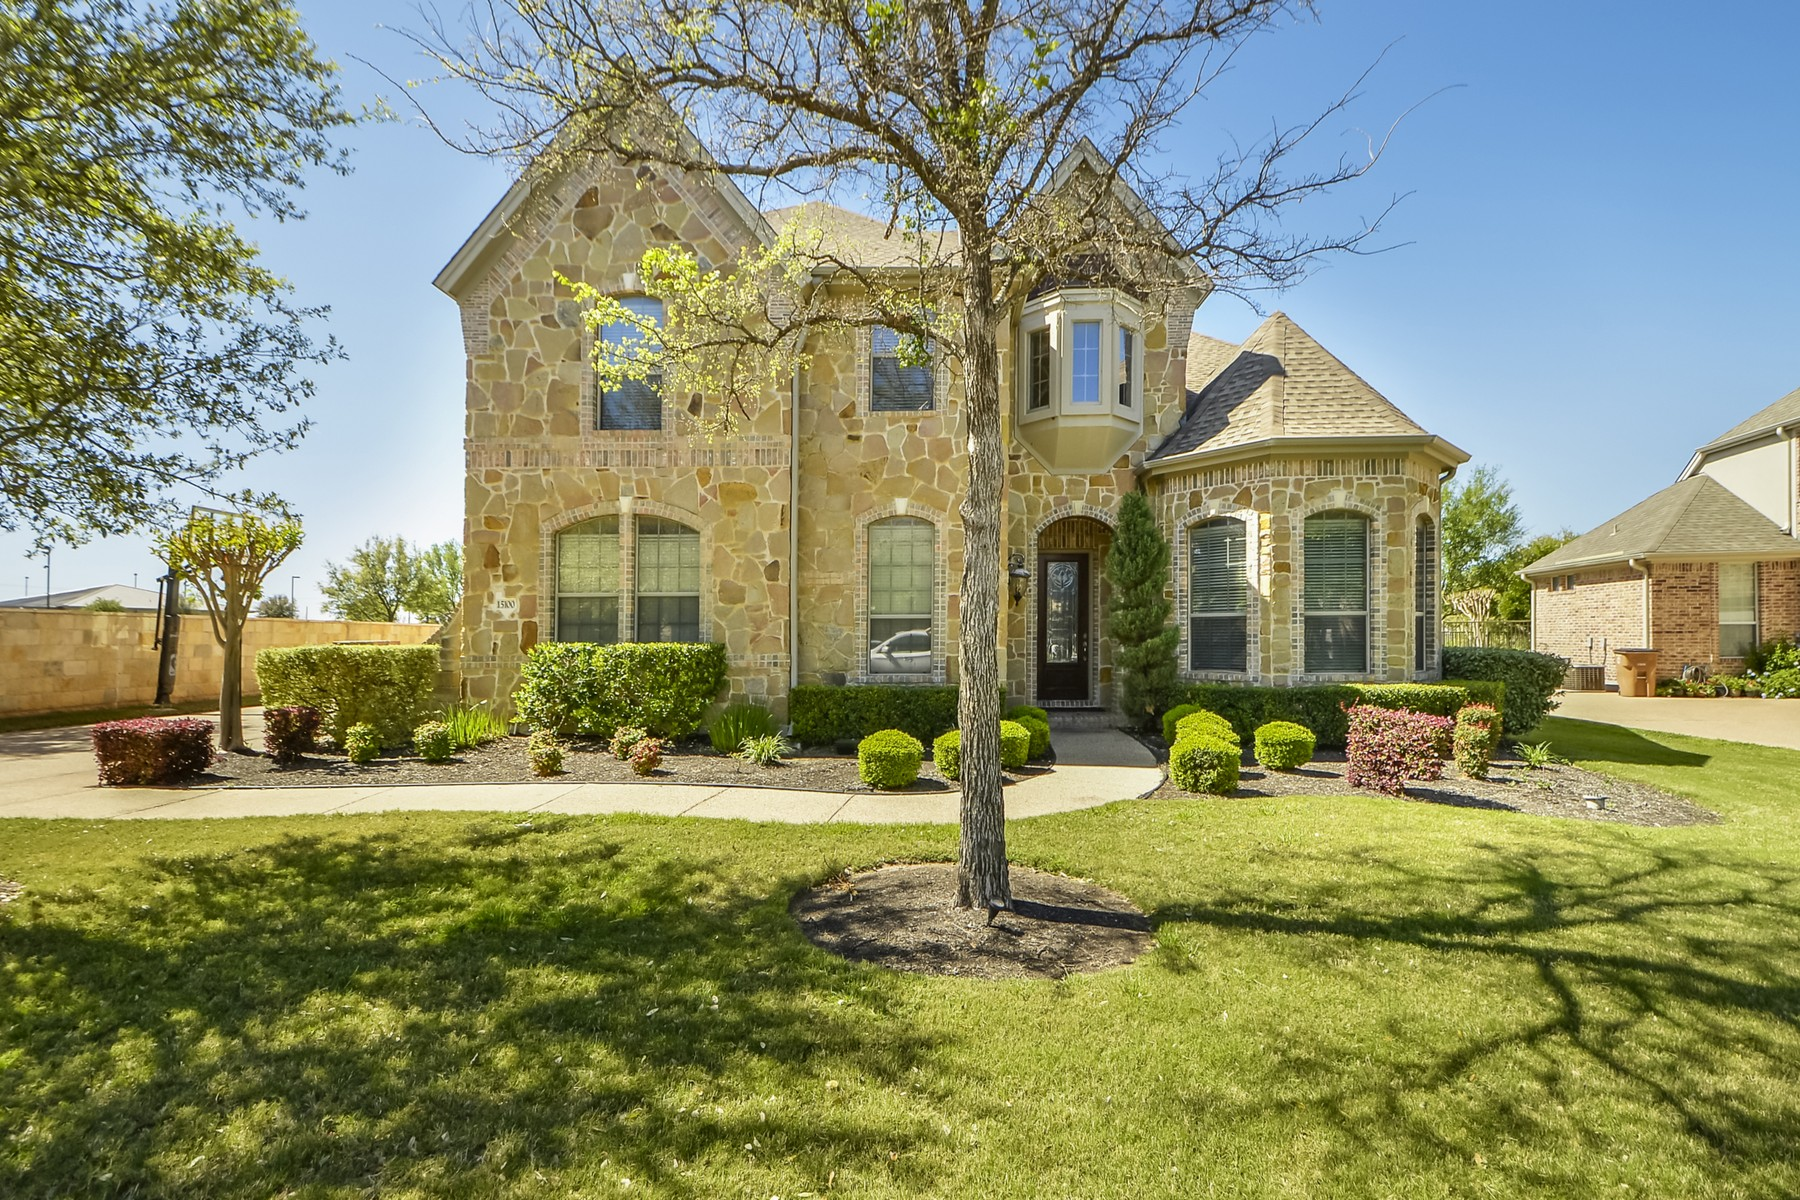 Single Family Home for Sale at Beautiful Custom Home on the Golf Course 15100 Sunningdale St Austin, Texas 78717 United States